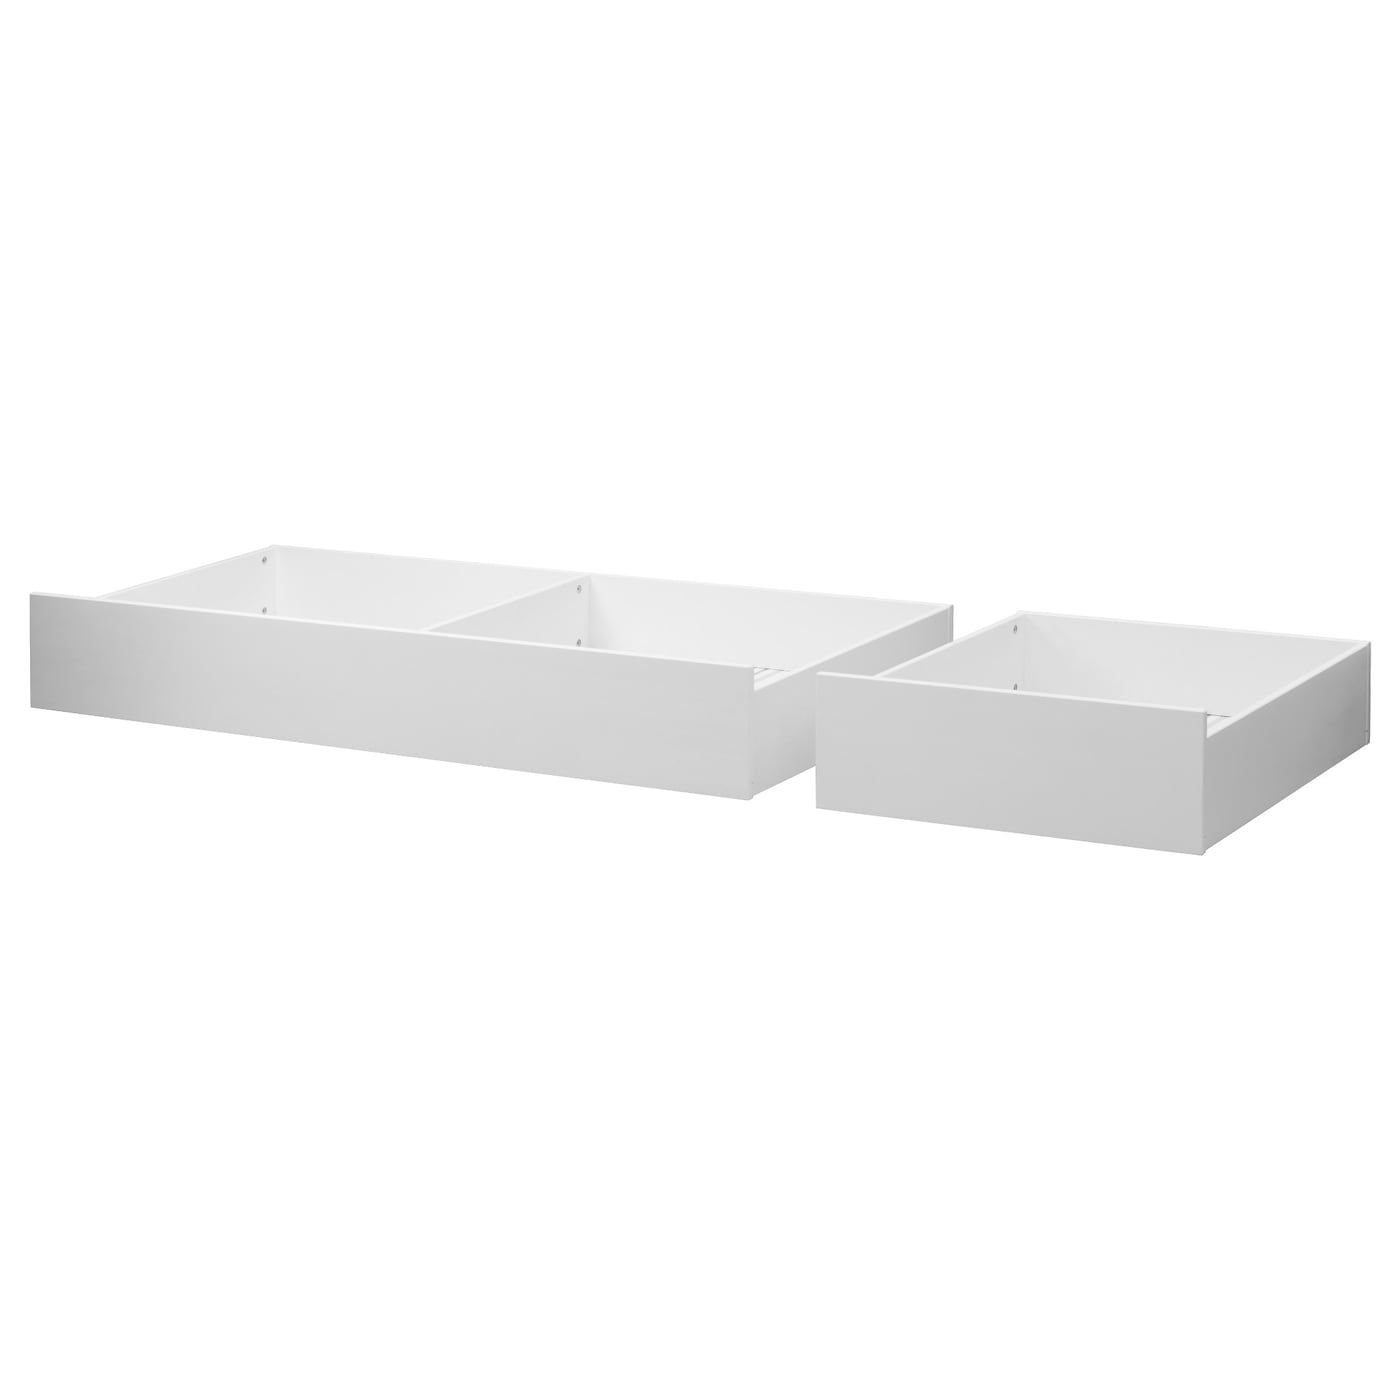 IKEA HEMNES bed storage box, set of 2 Turns the space under your bed into a smart place for storing.